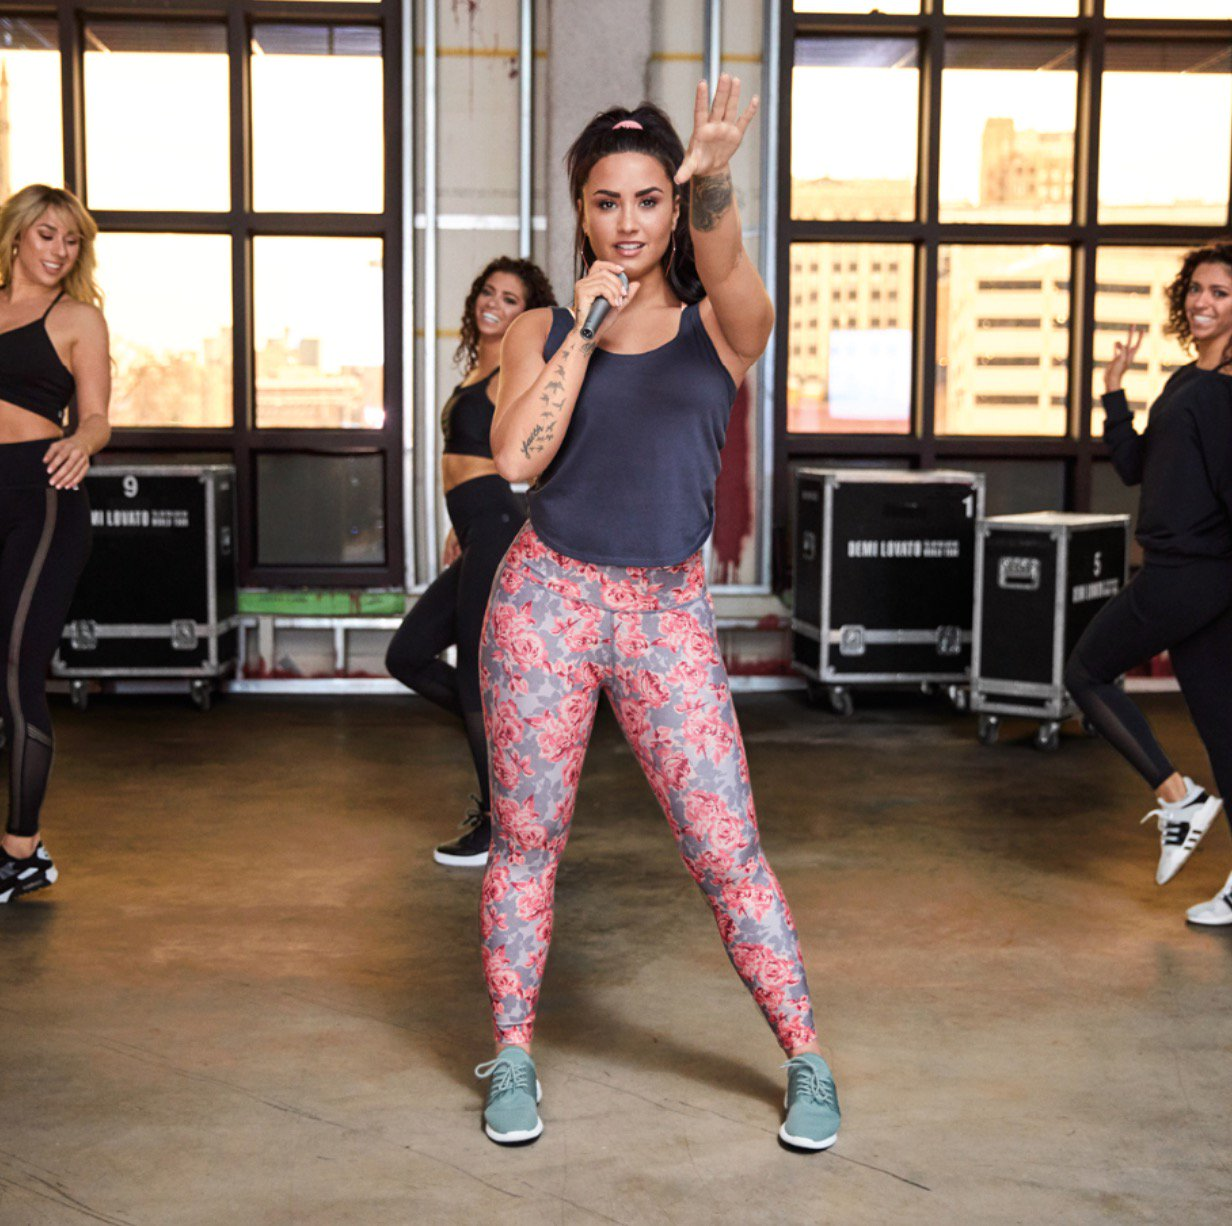 So psyched about these new @Fabletics styles! What do you think of this one? #Demi4Fabletics https://t.co/uhCeVYTQmt